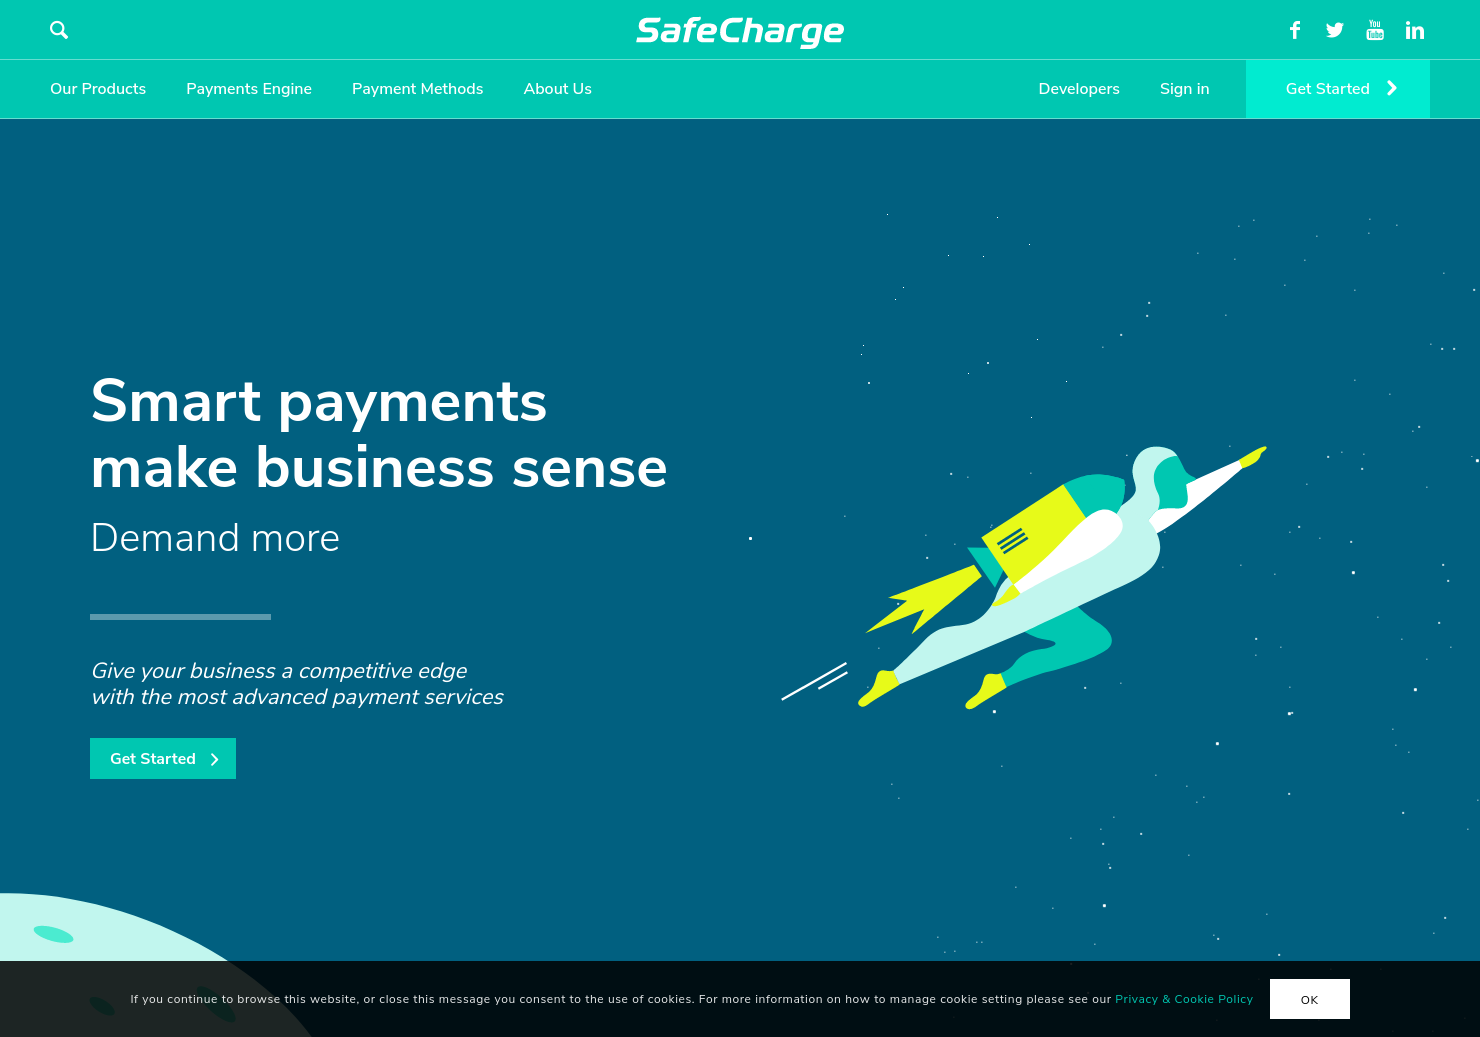 SafeCharge Home Page